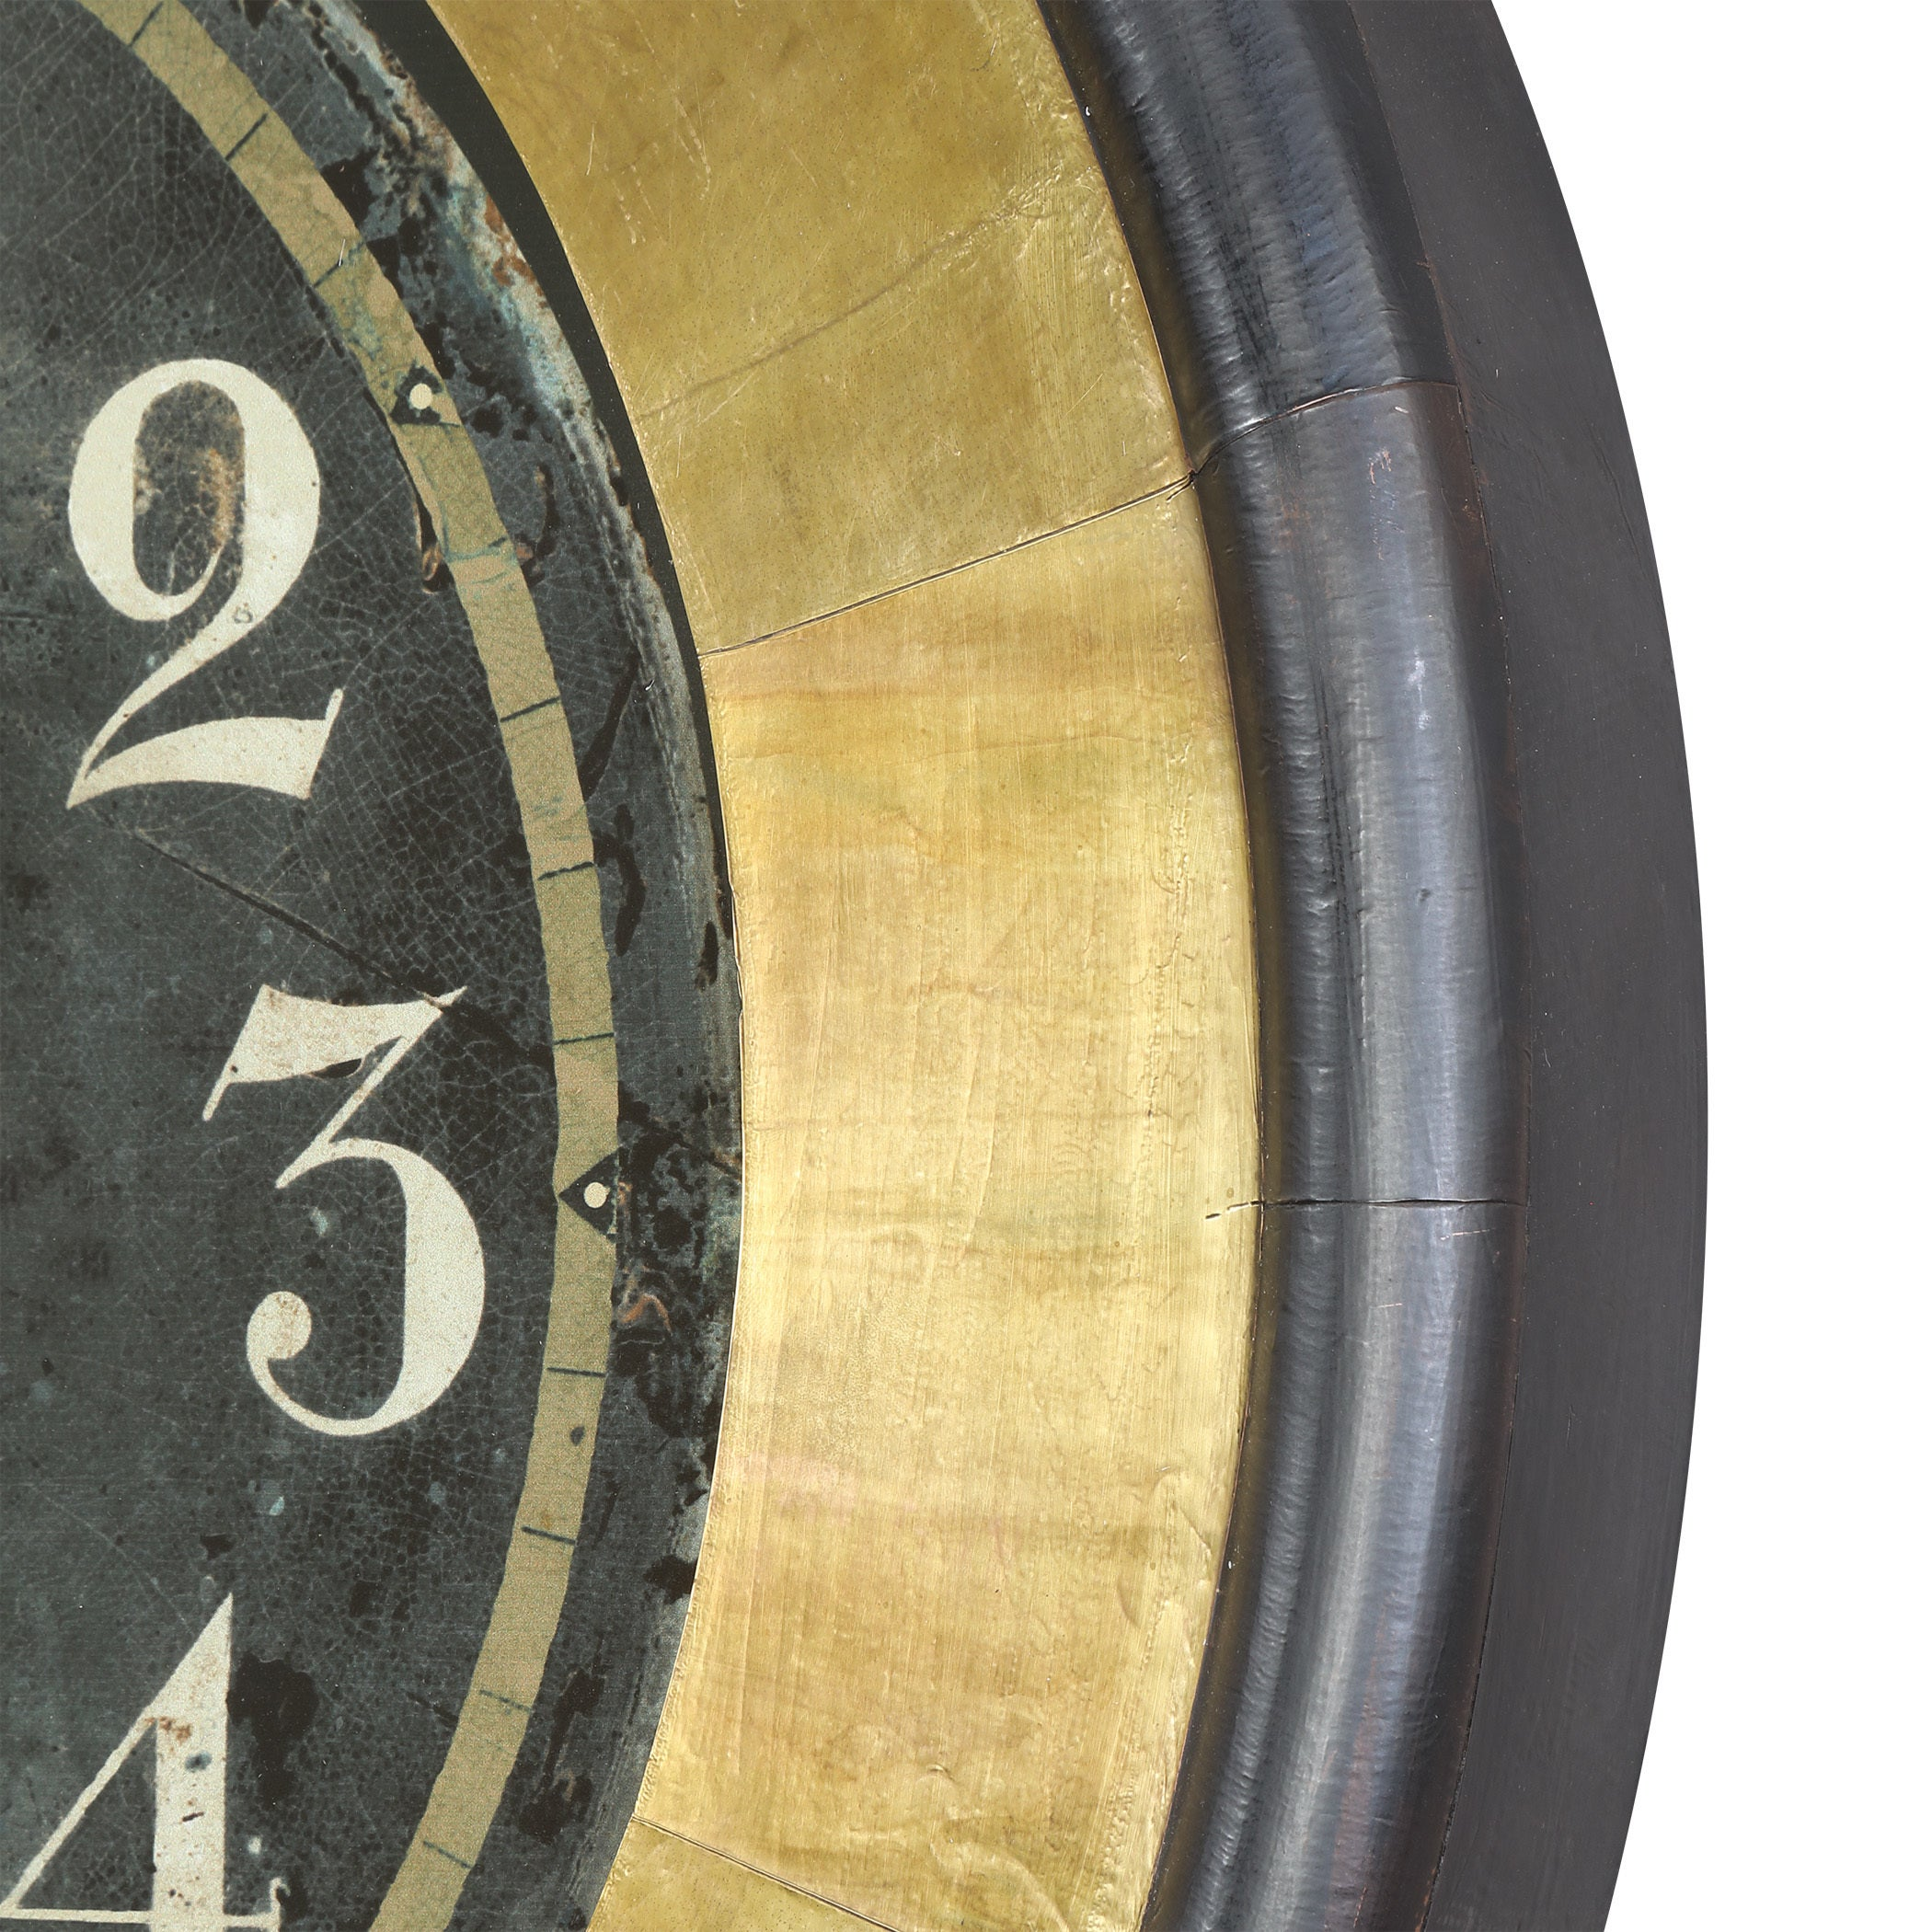 Uttermost Lannaster Black and Gold Wall Clock - Free Shipping Today ...